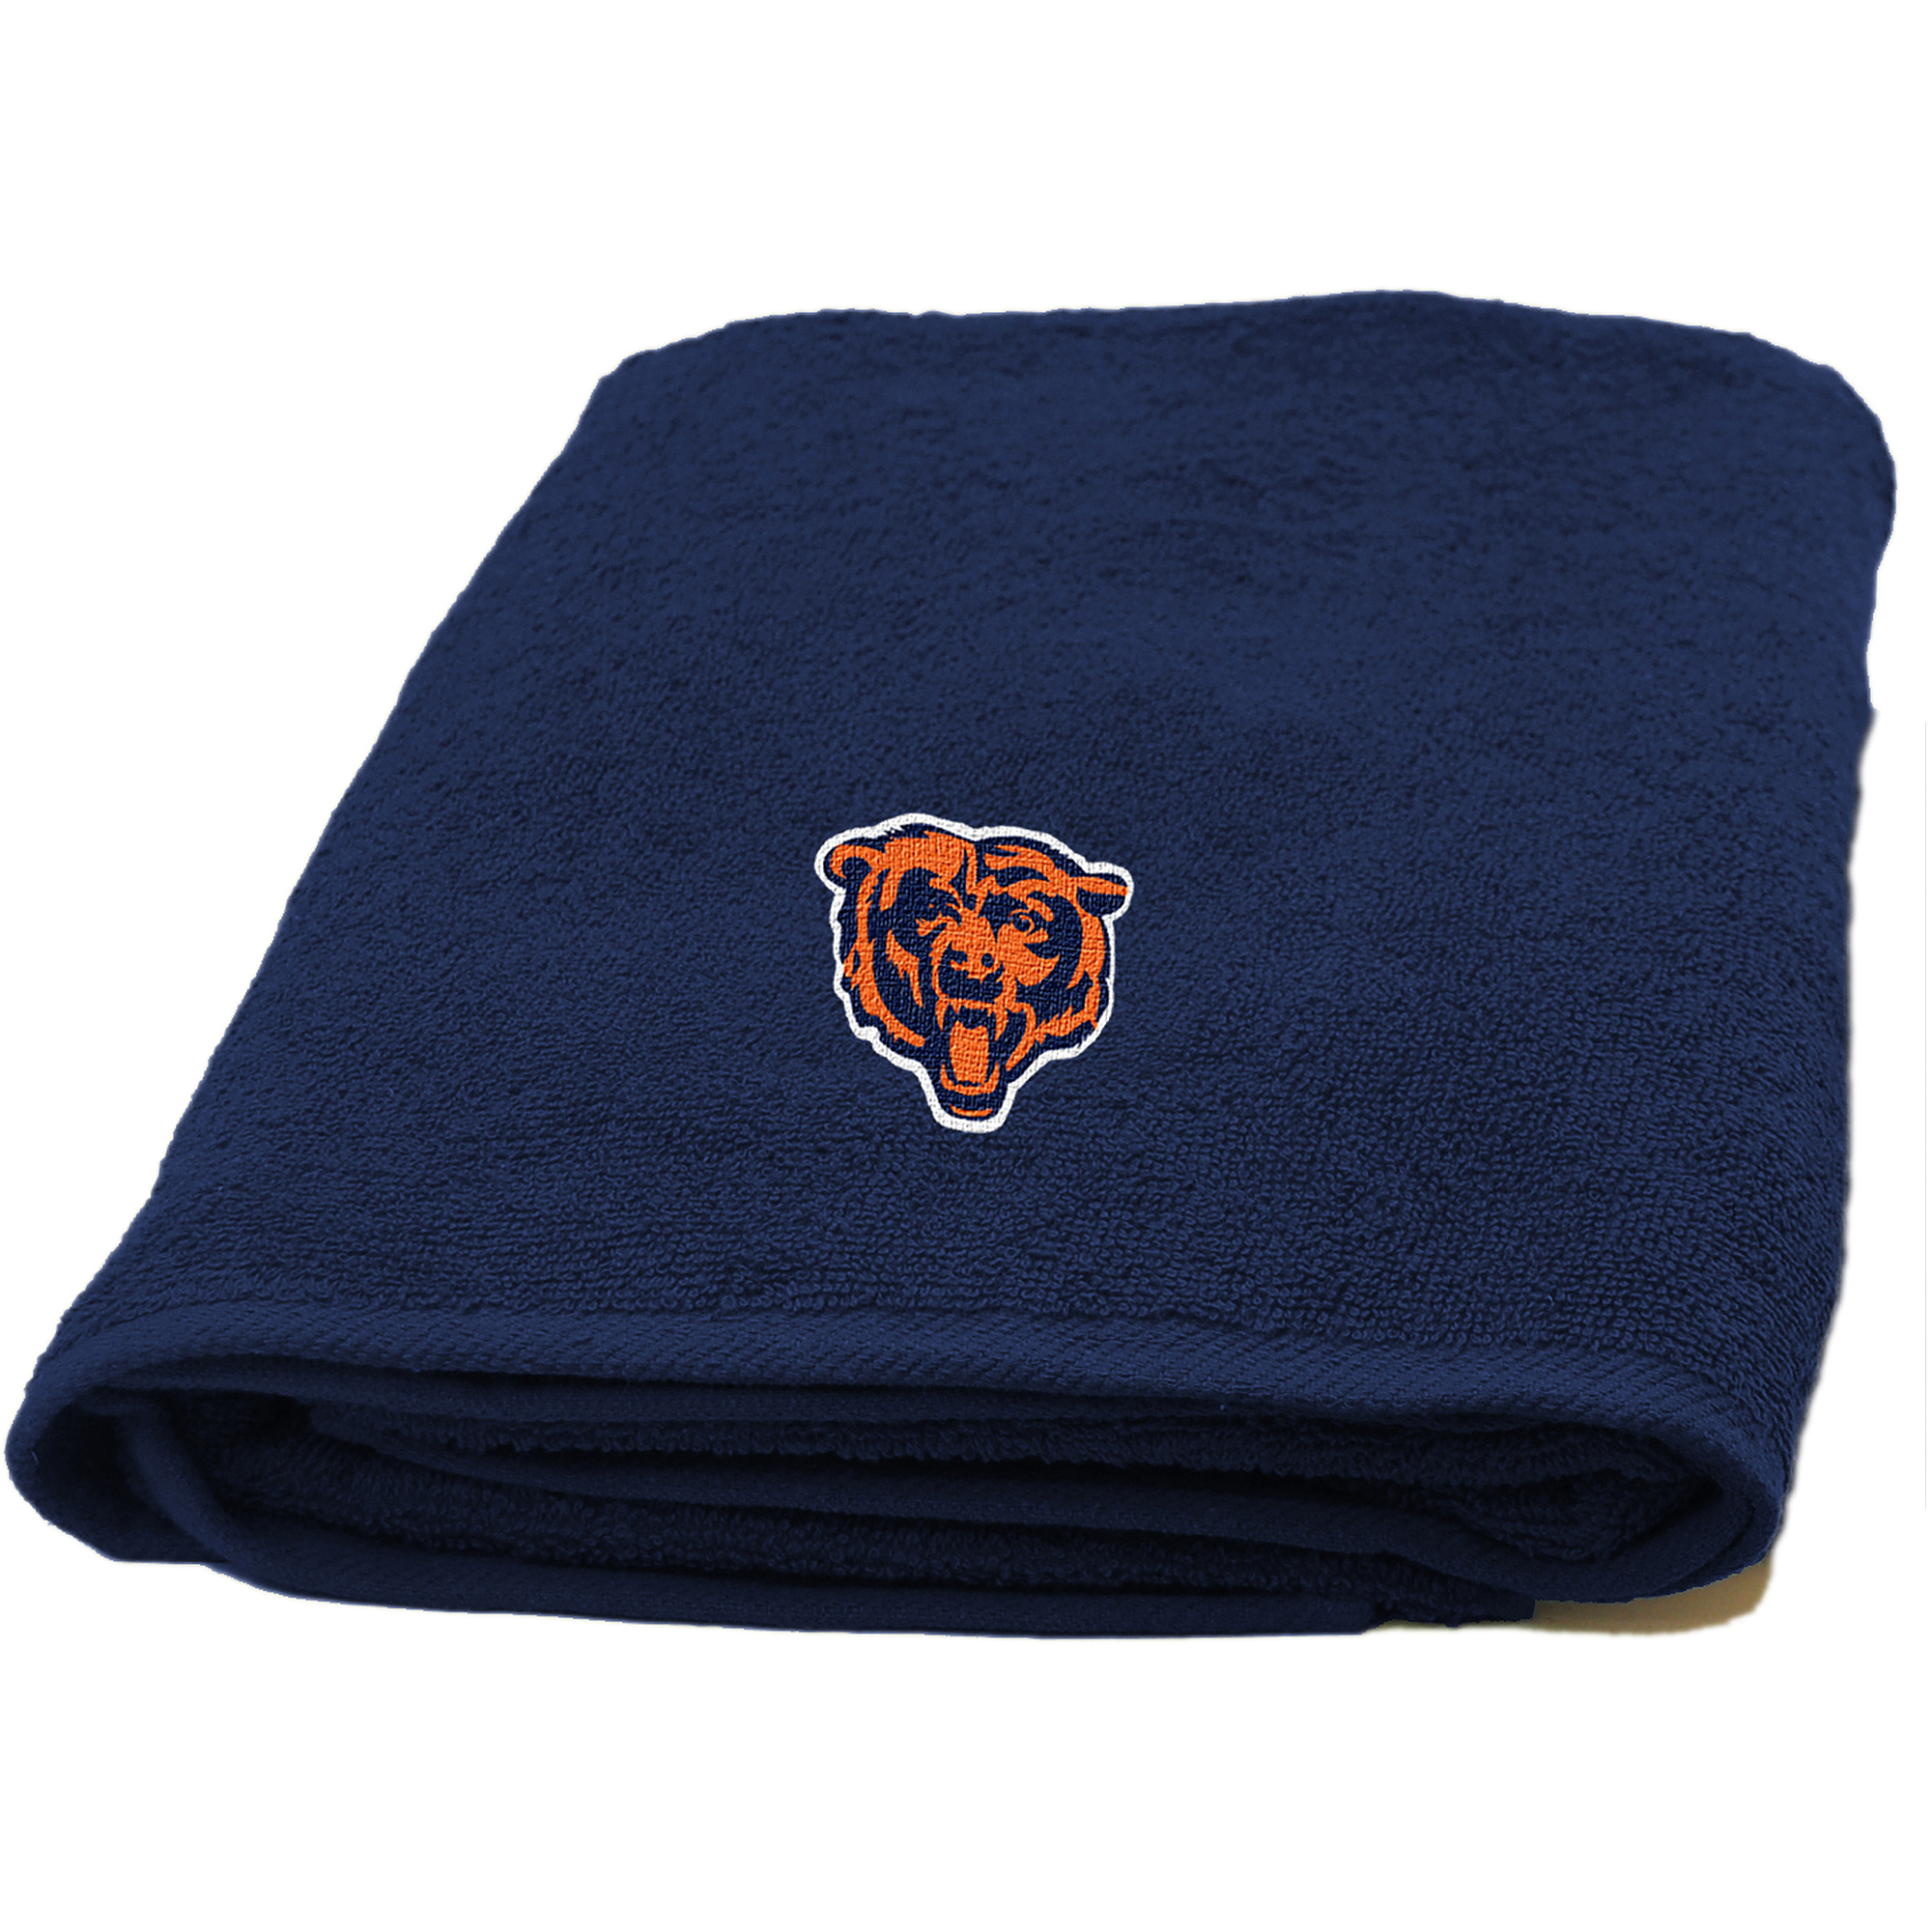 NFL Chicago Bears Decorative Bath Collection Bath Towel